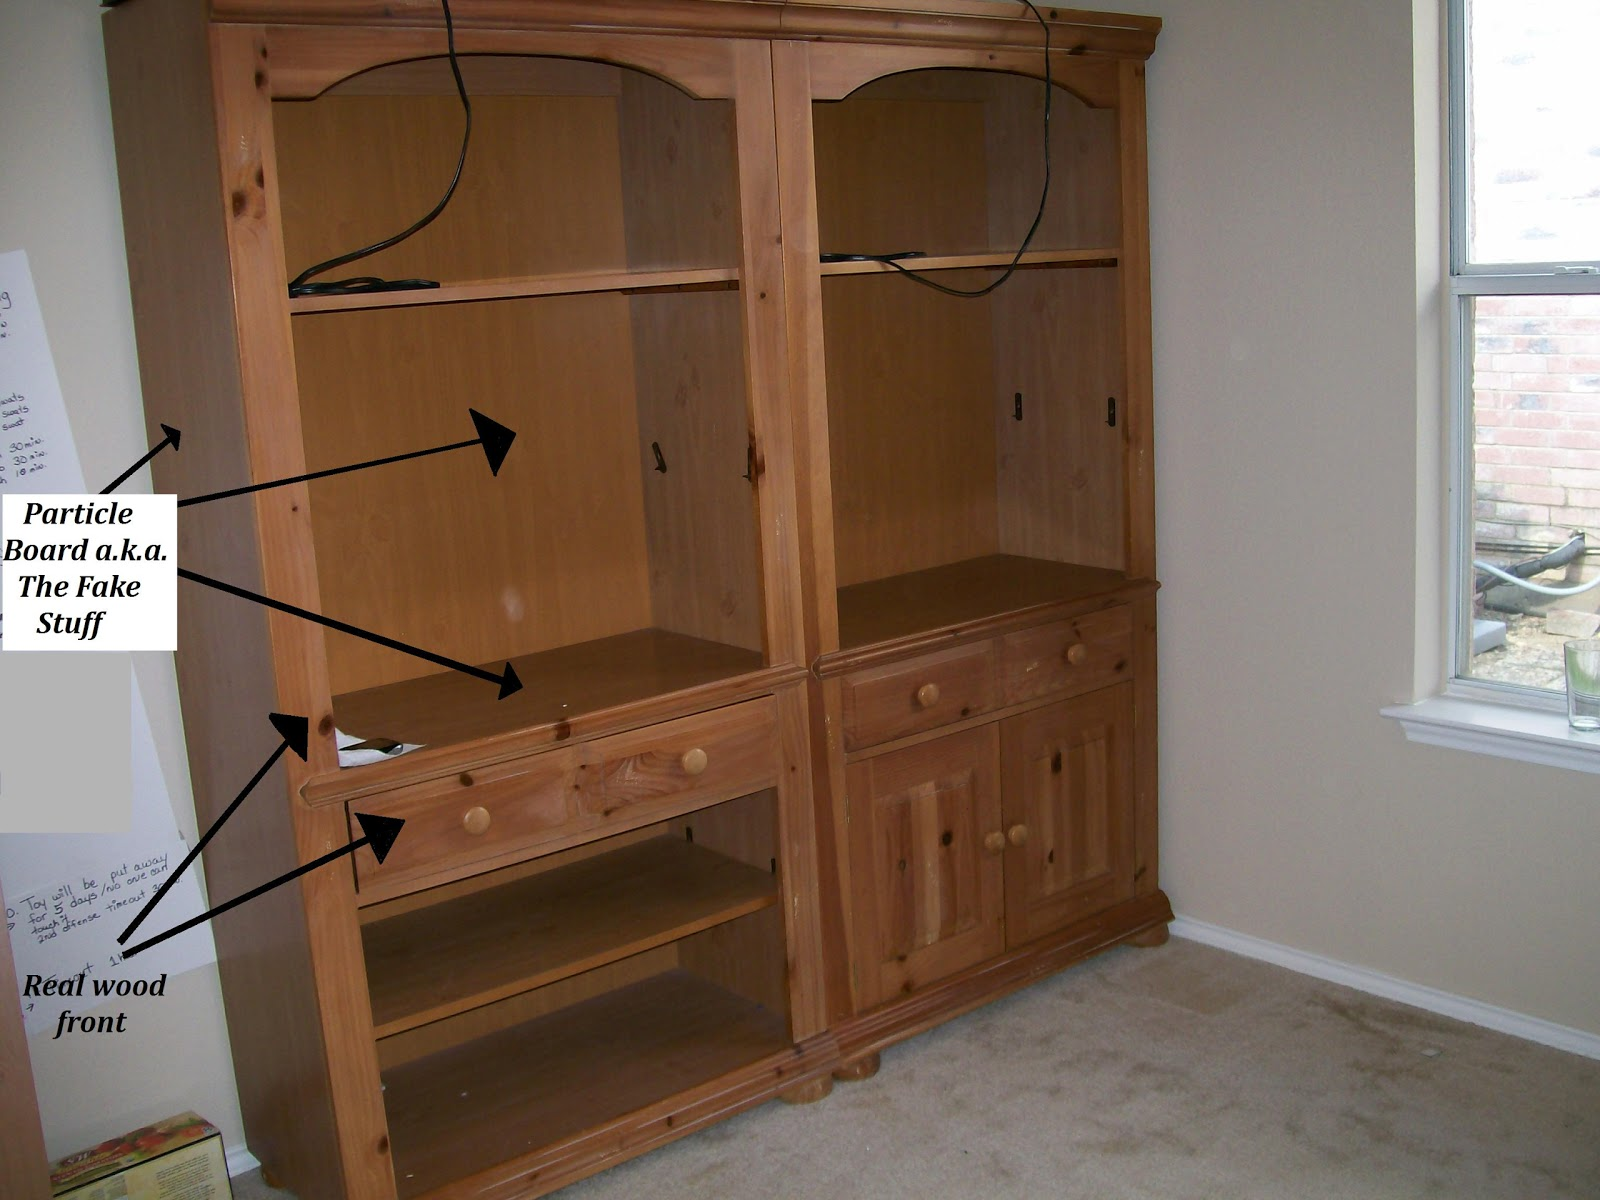 How To Paint Pressboard Cabinets | www.resnooze.com